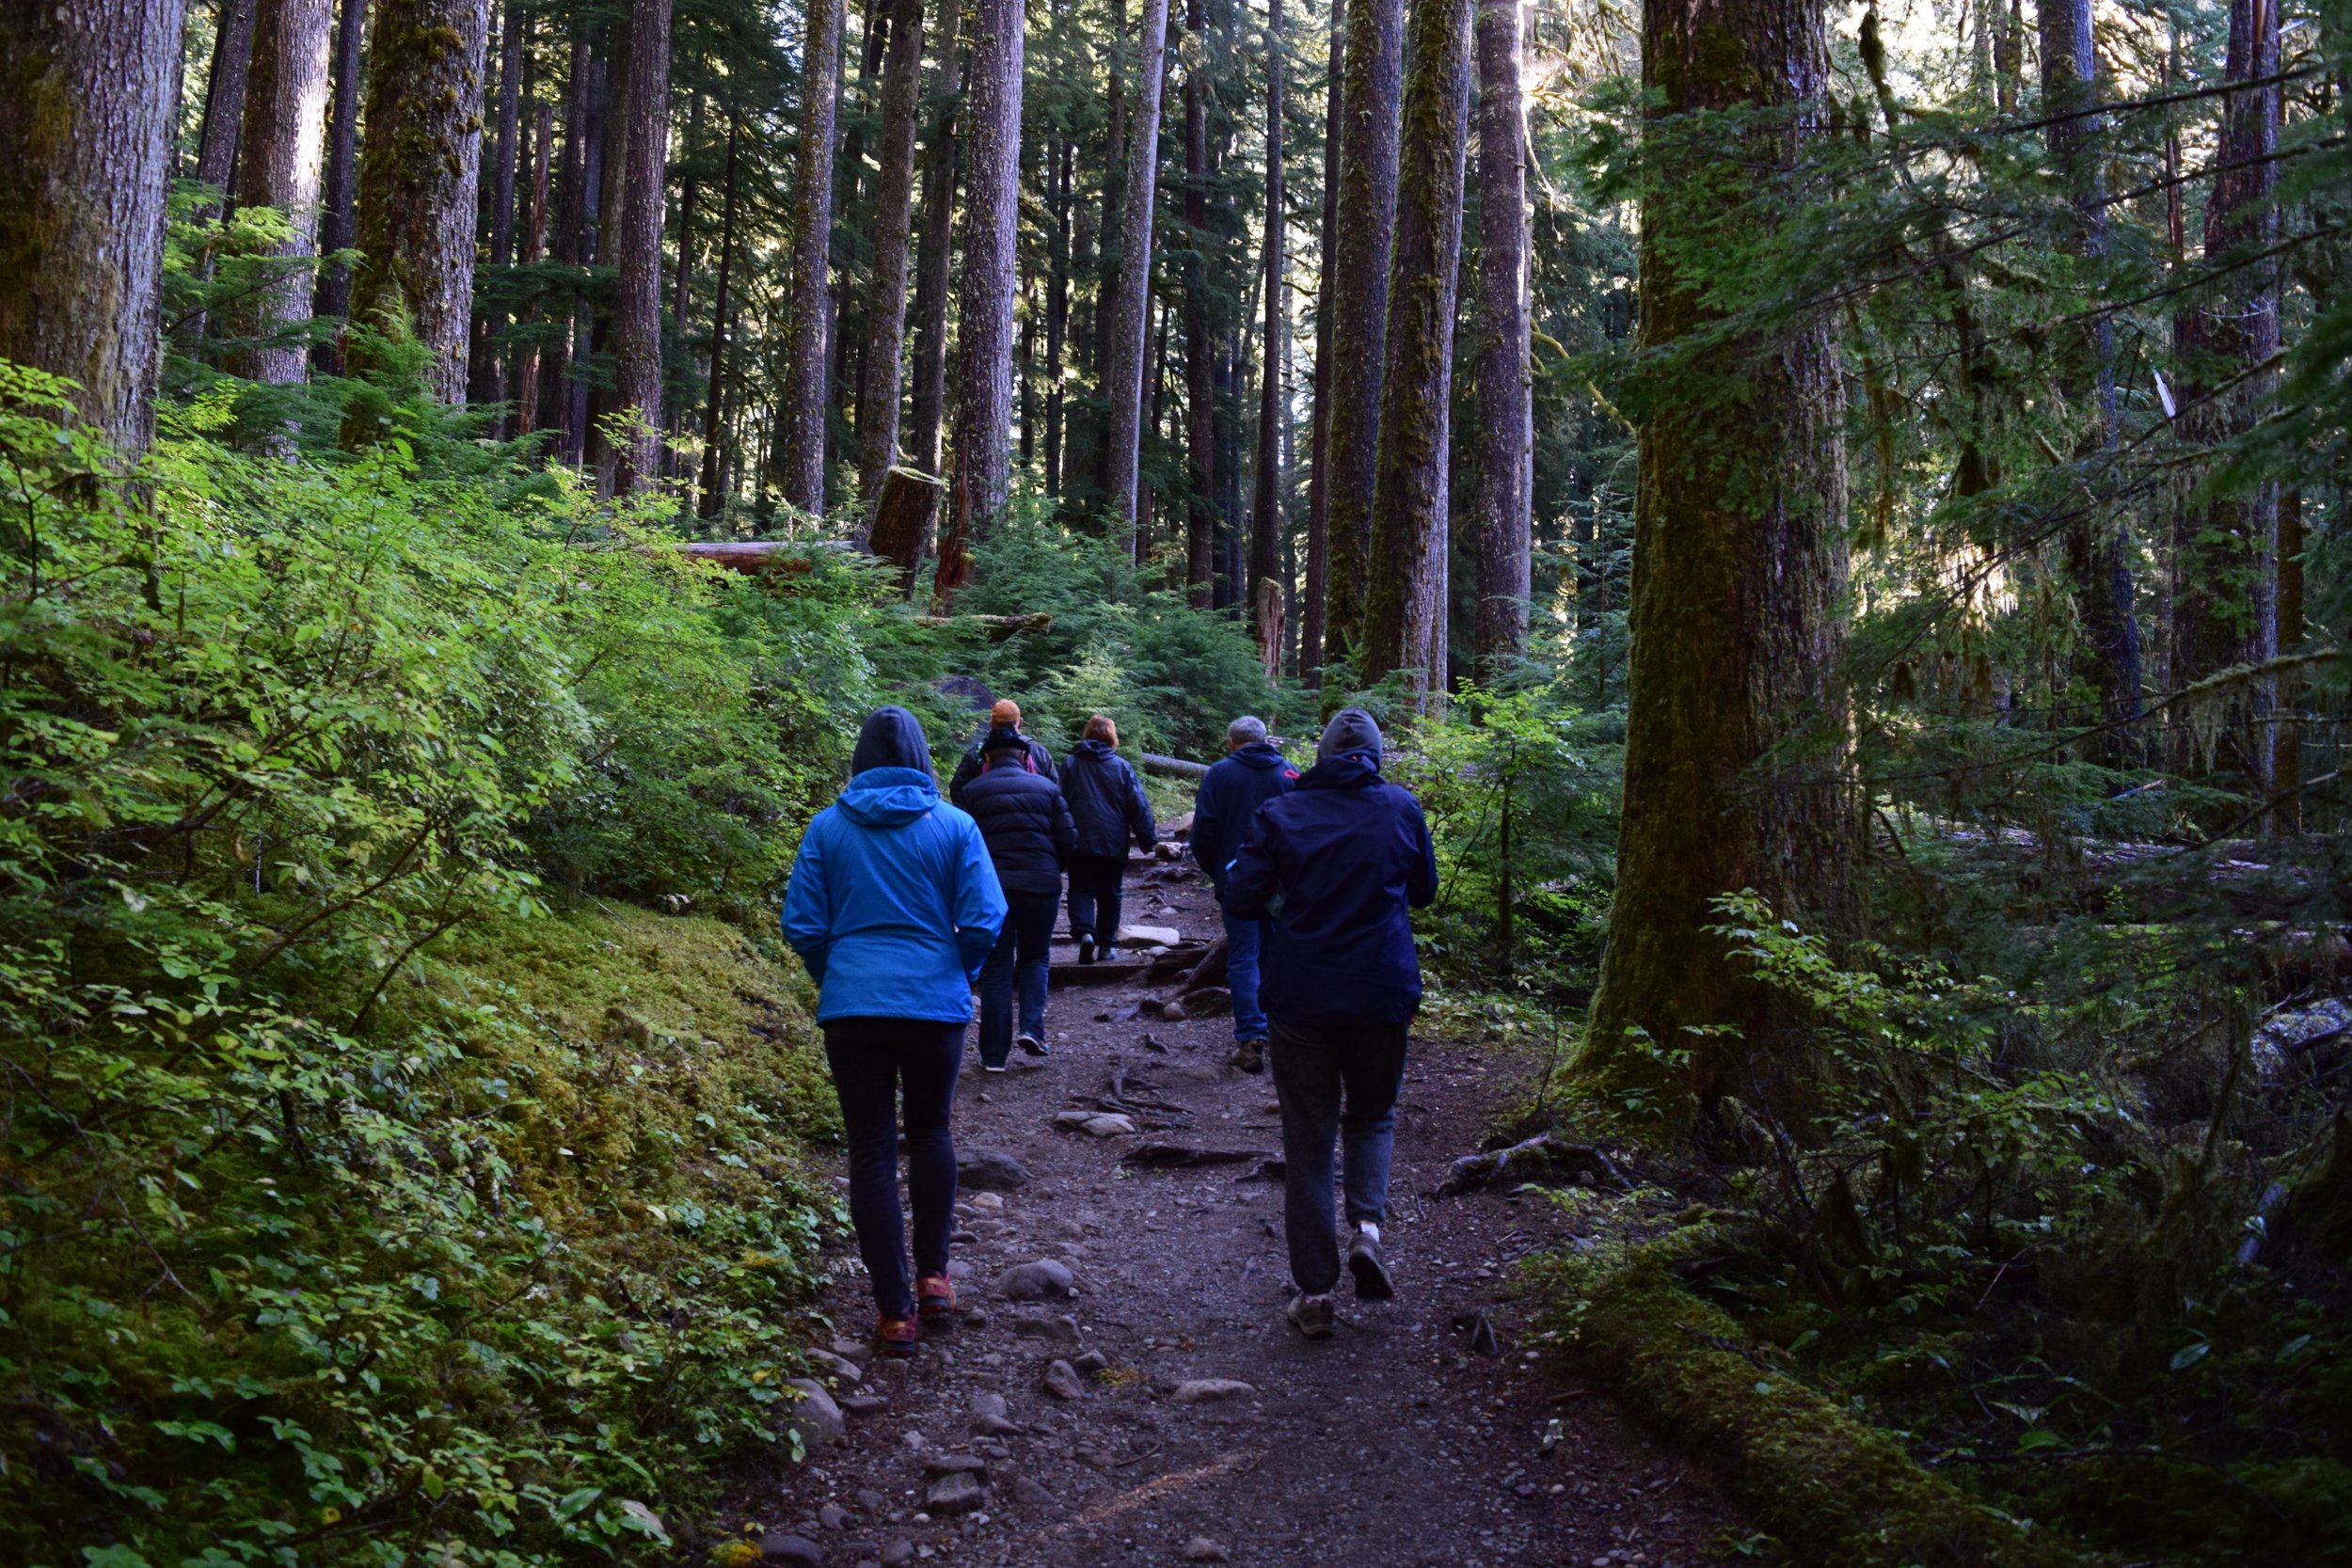 Hiking through the old growth forest